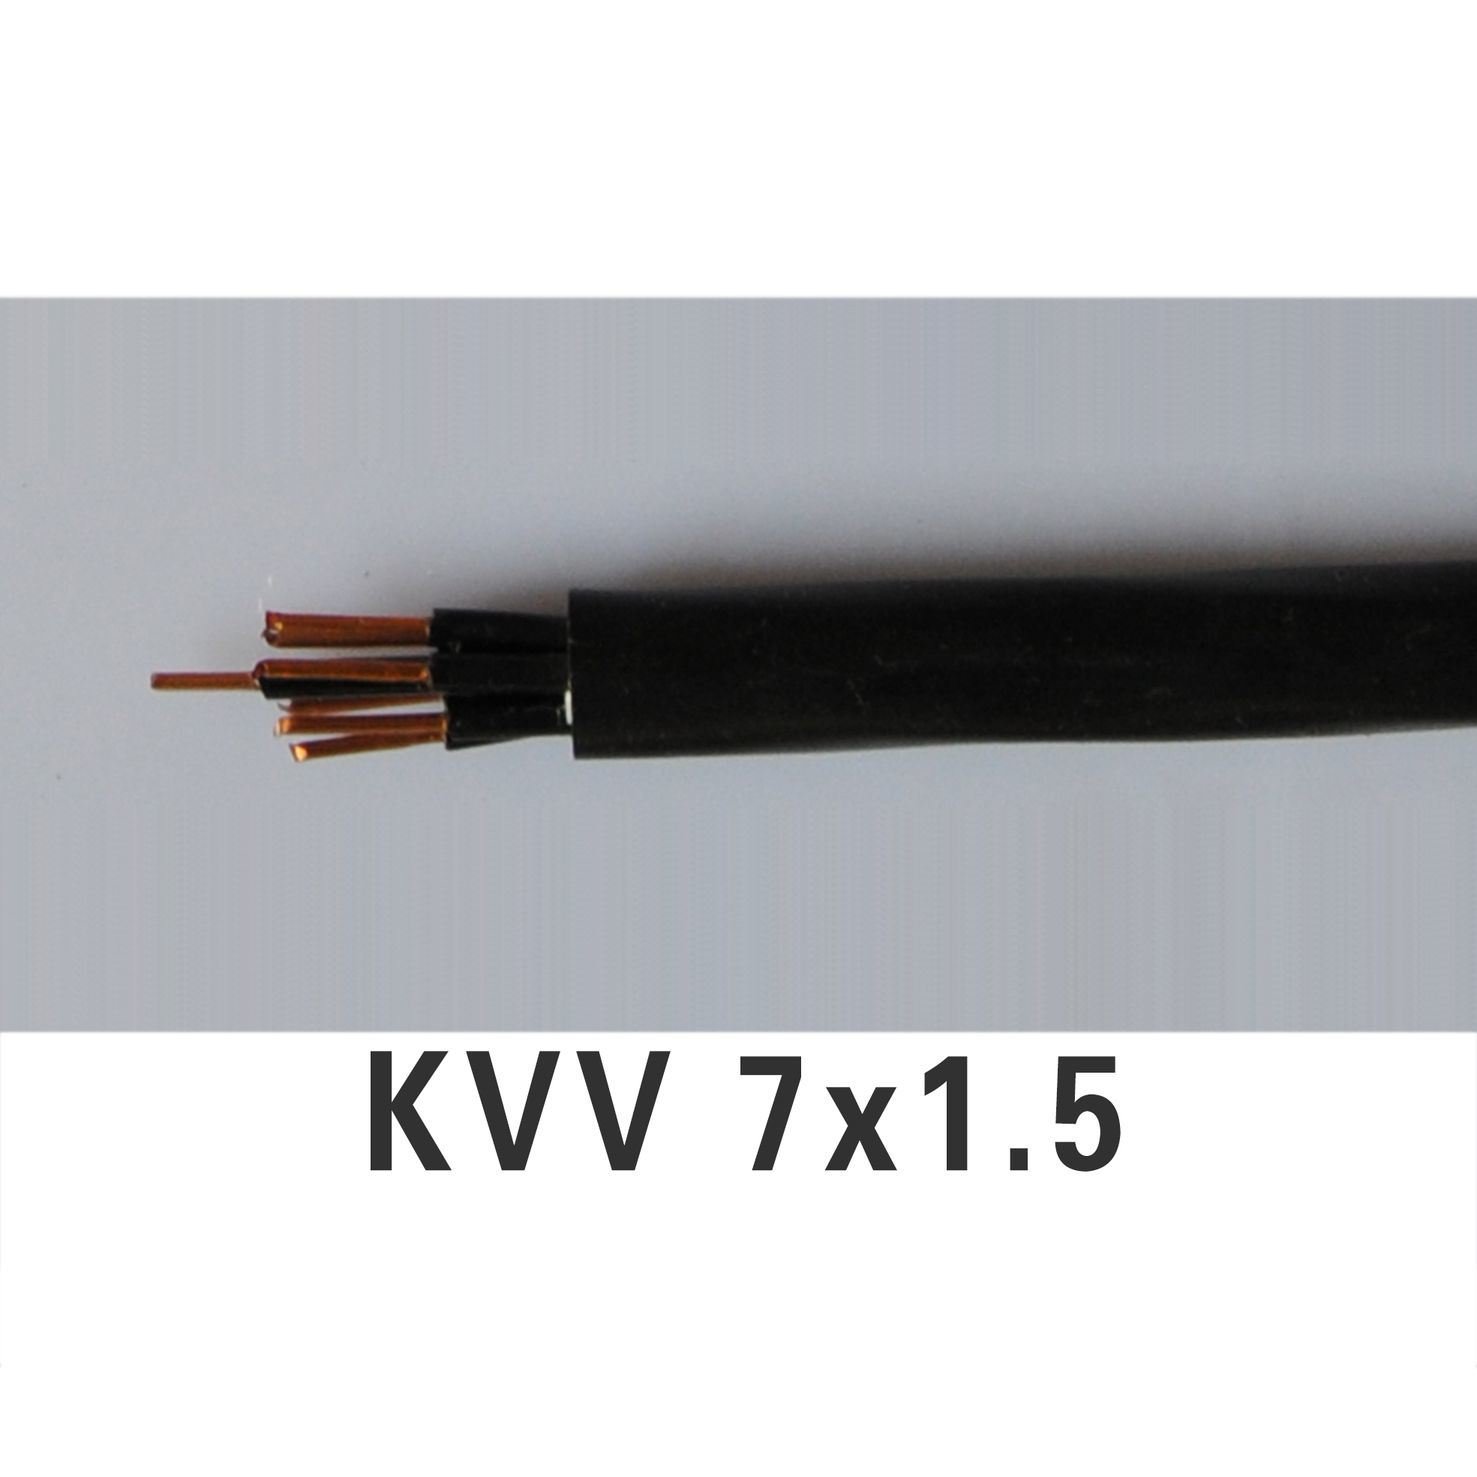 China PVC Insulated & Sheathed Control Cable/Wire (KVV) - China Pvc ...